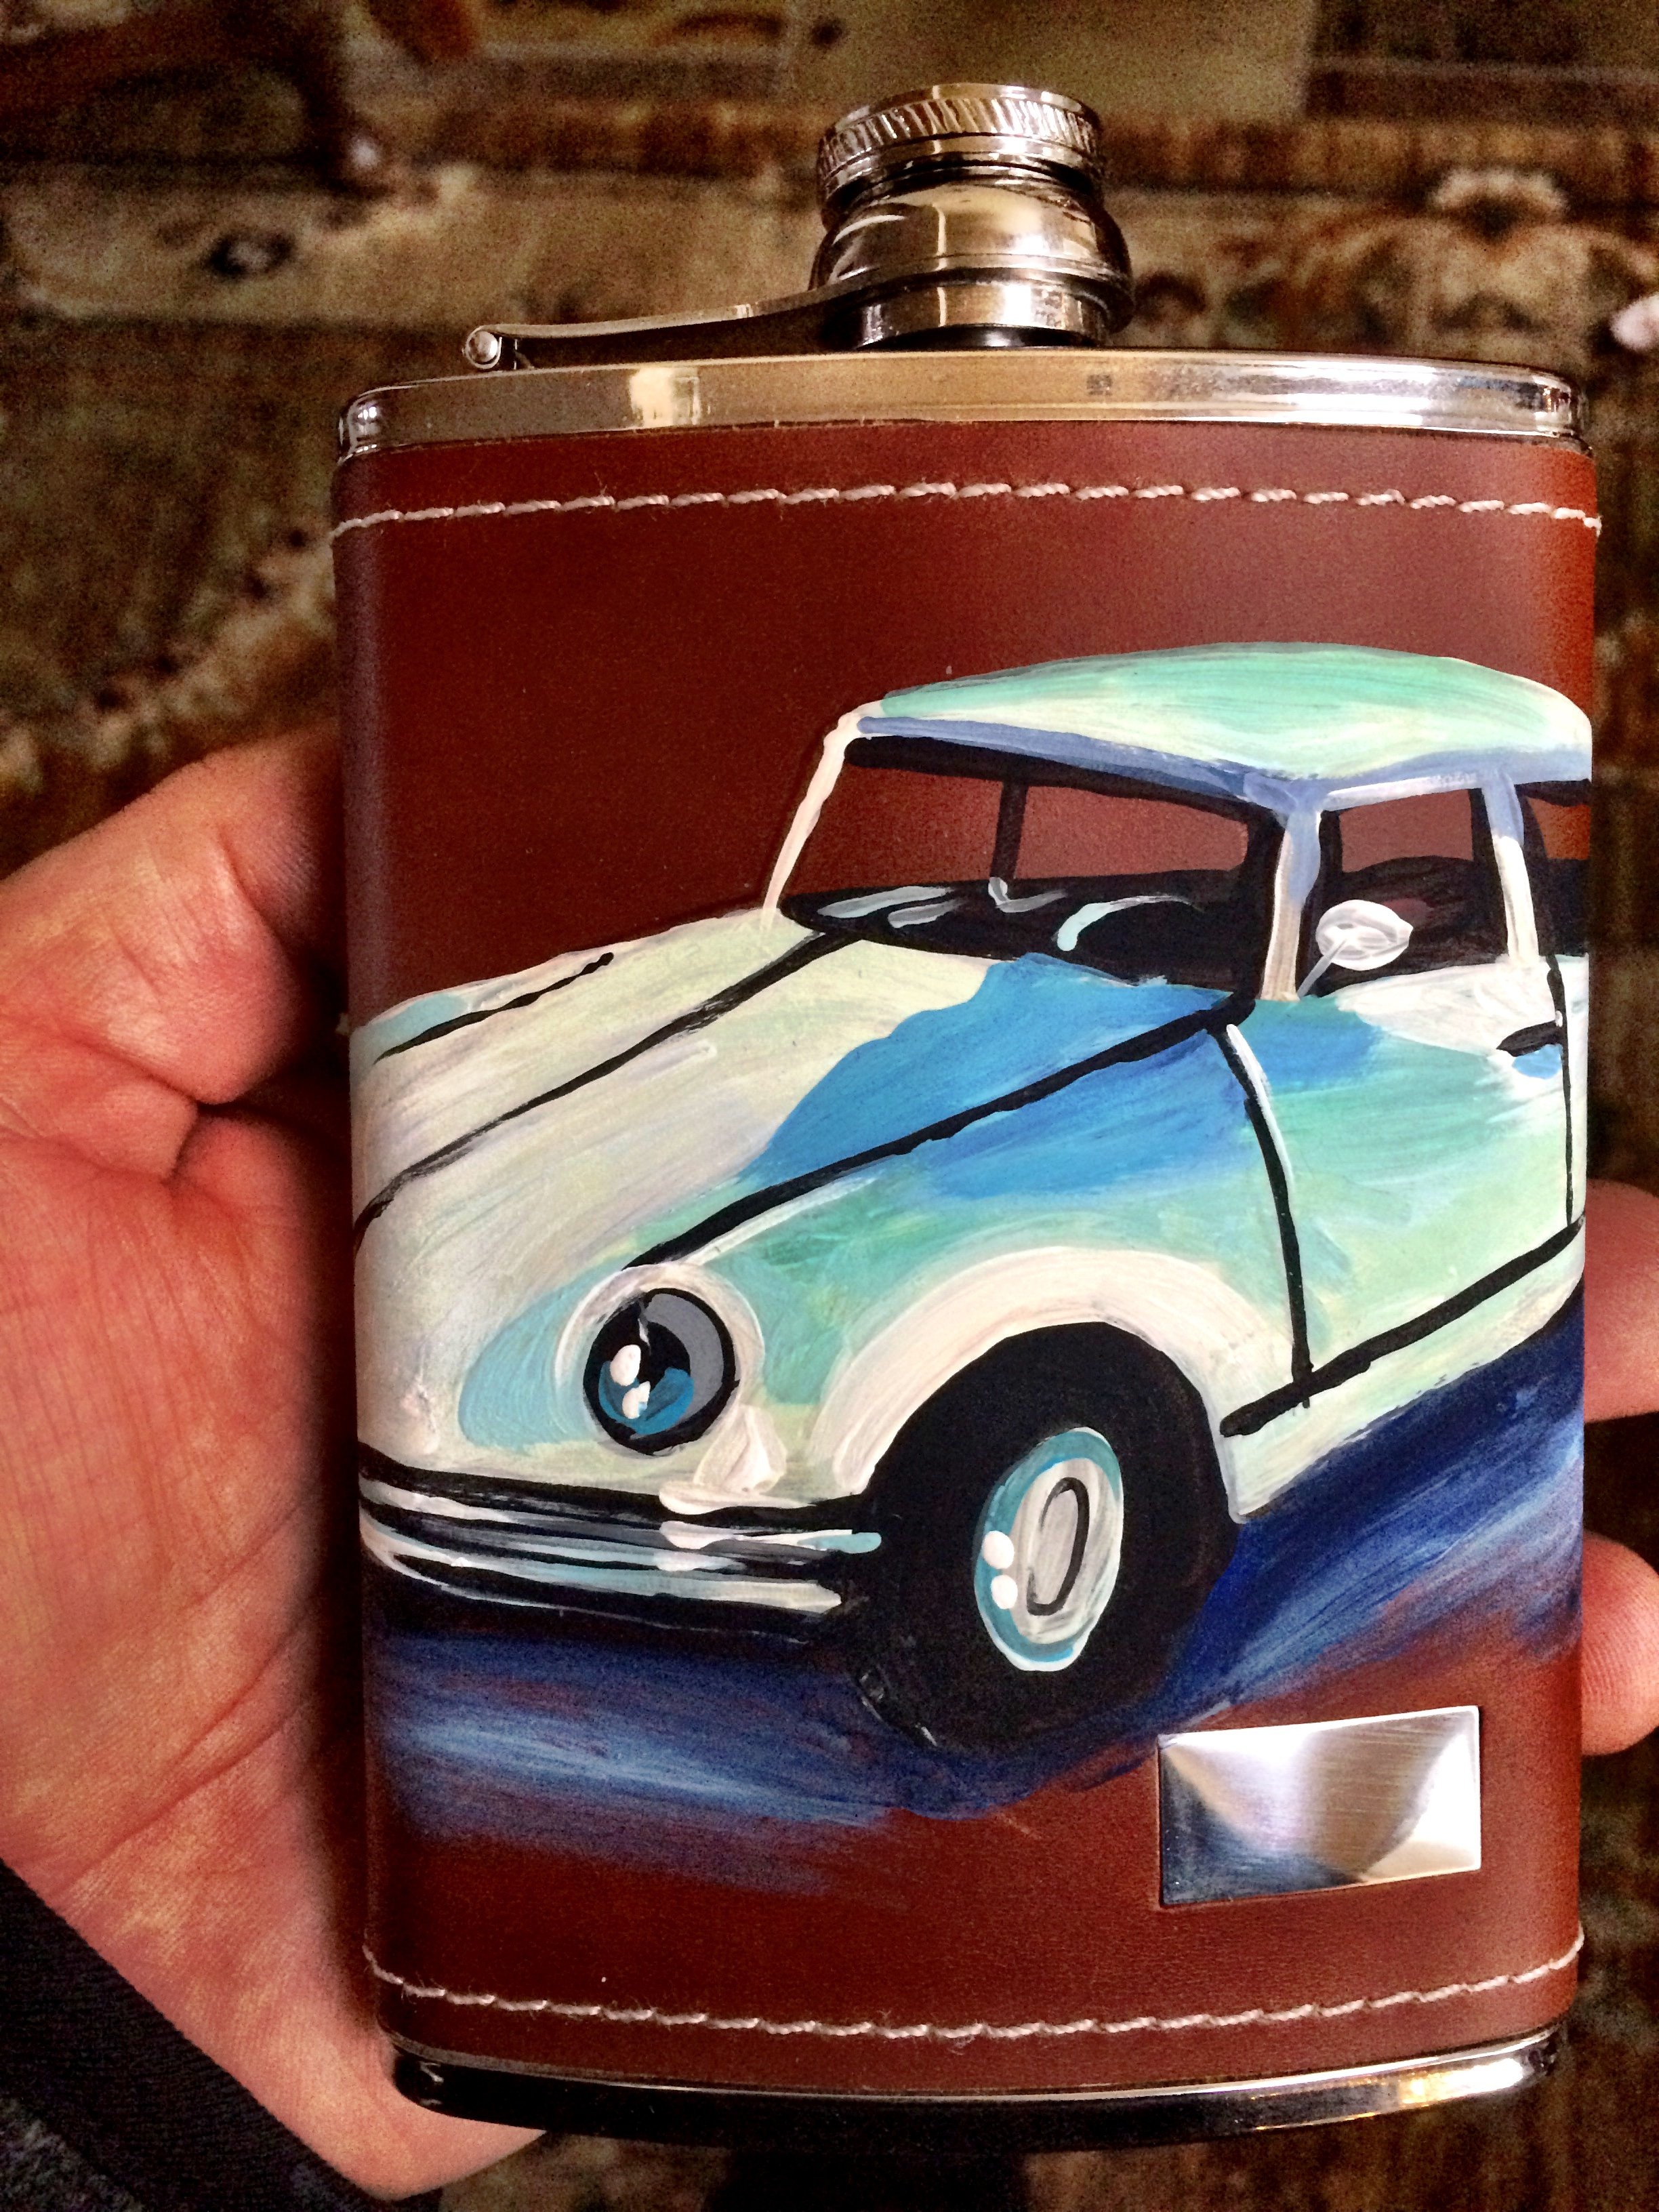 1971 Citroen DS painted on a high quality hip flask.